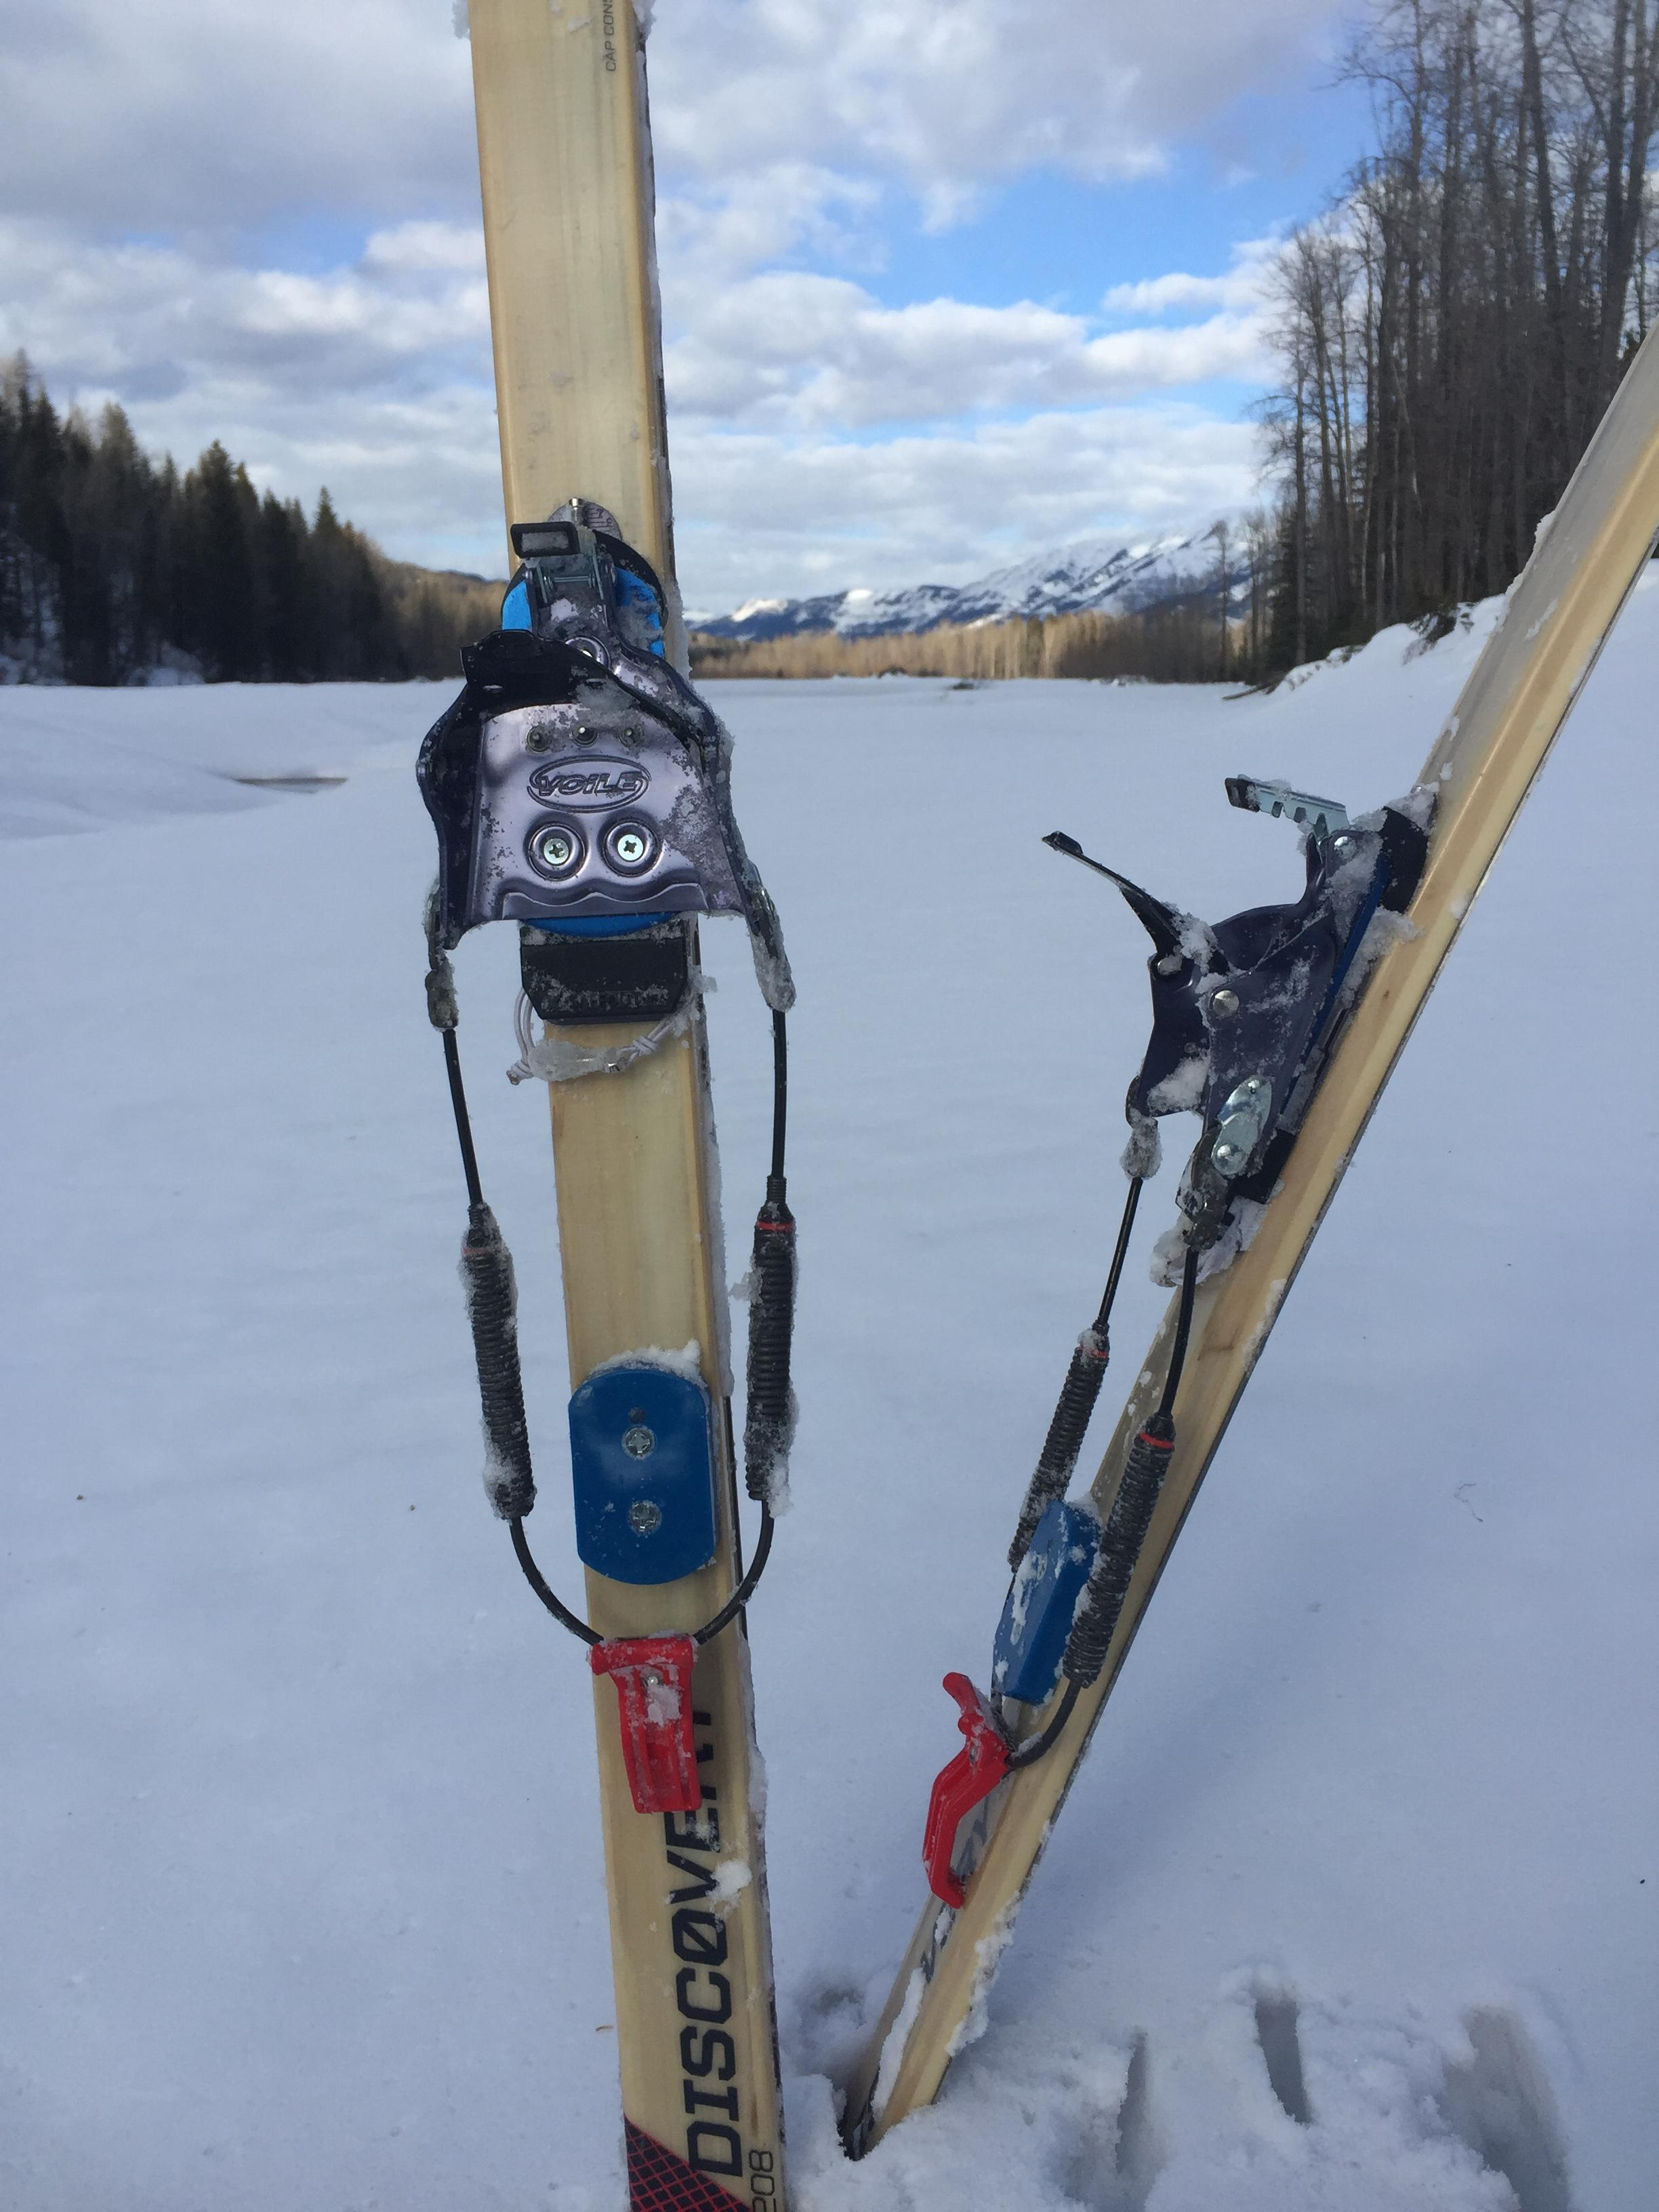 Alpina Discovery 80 XC skis